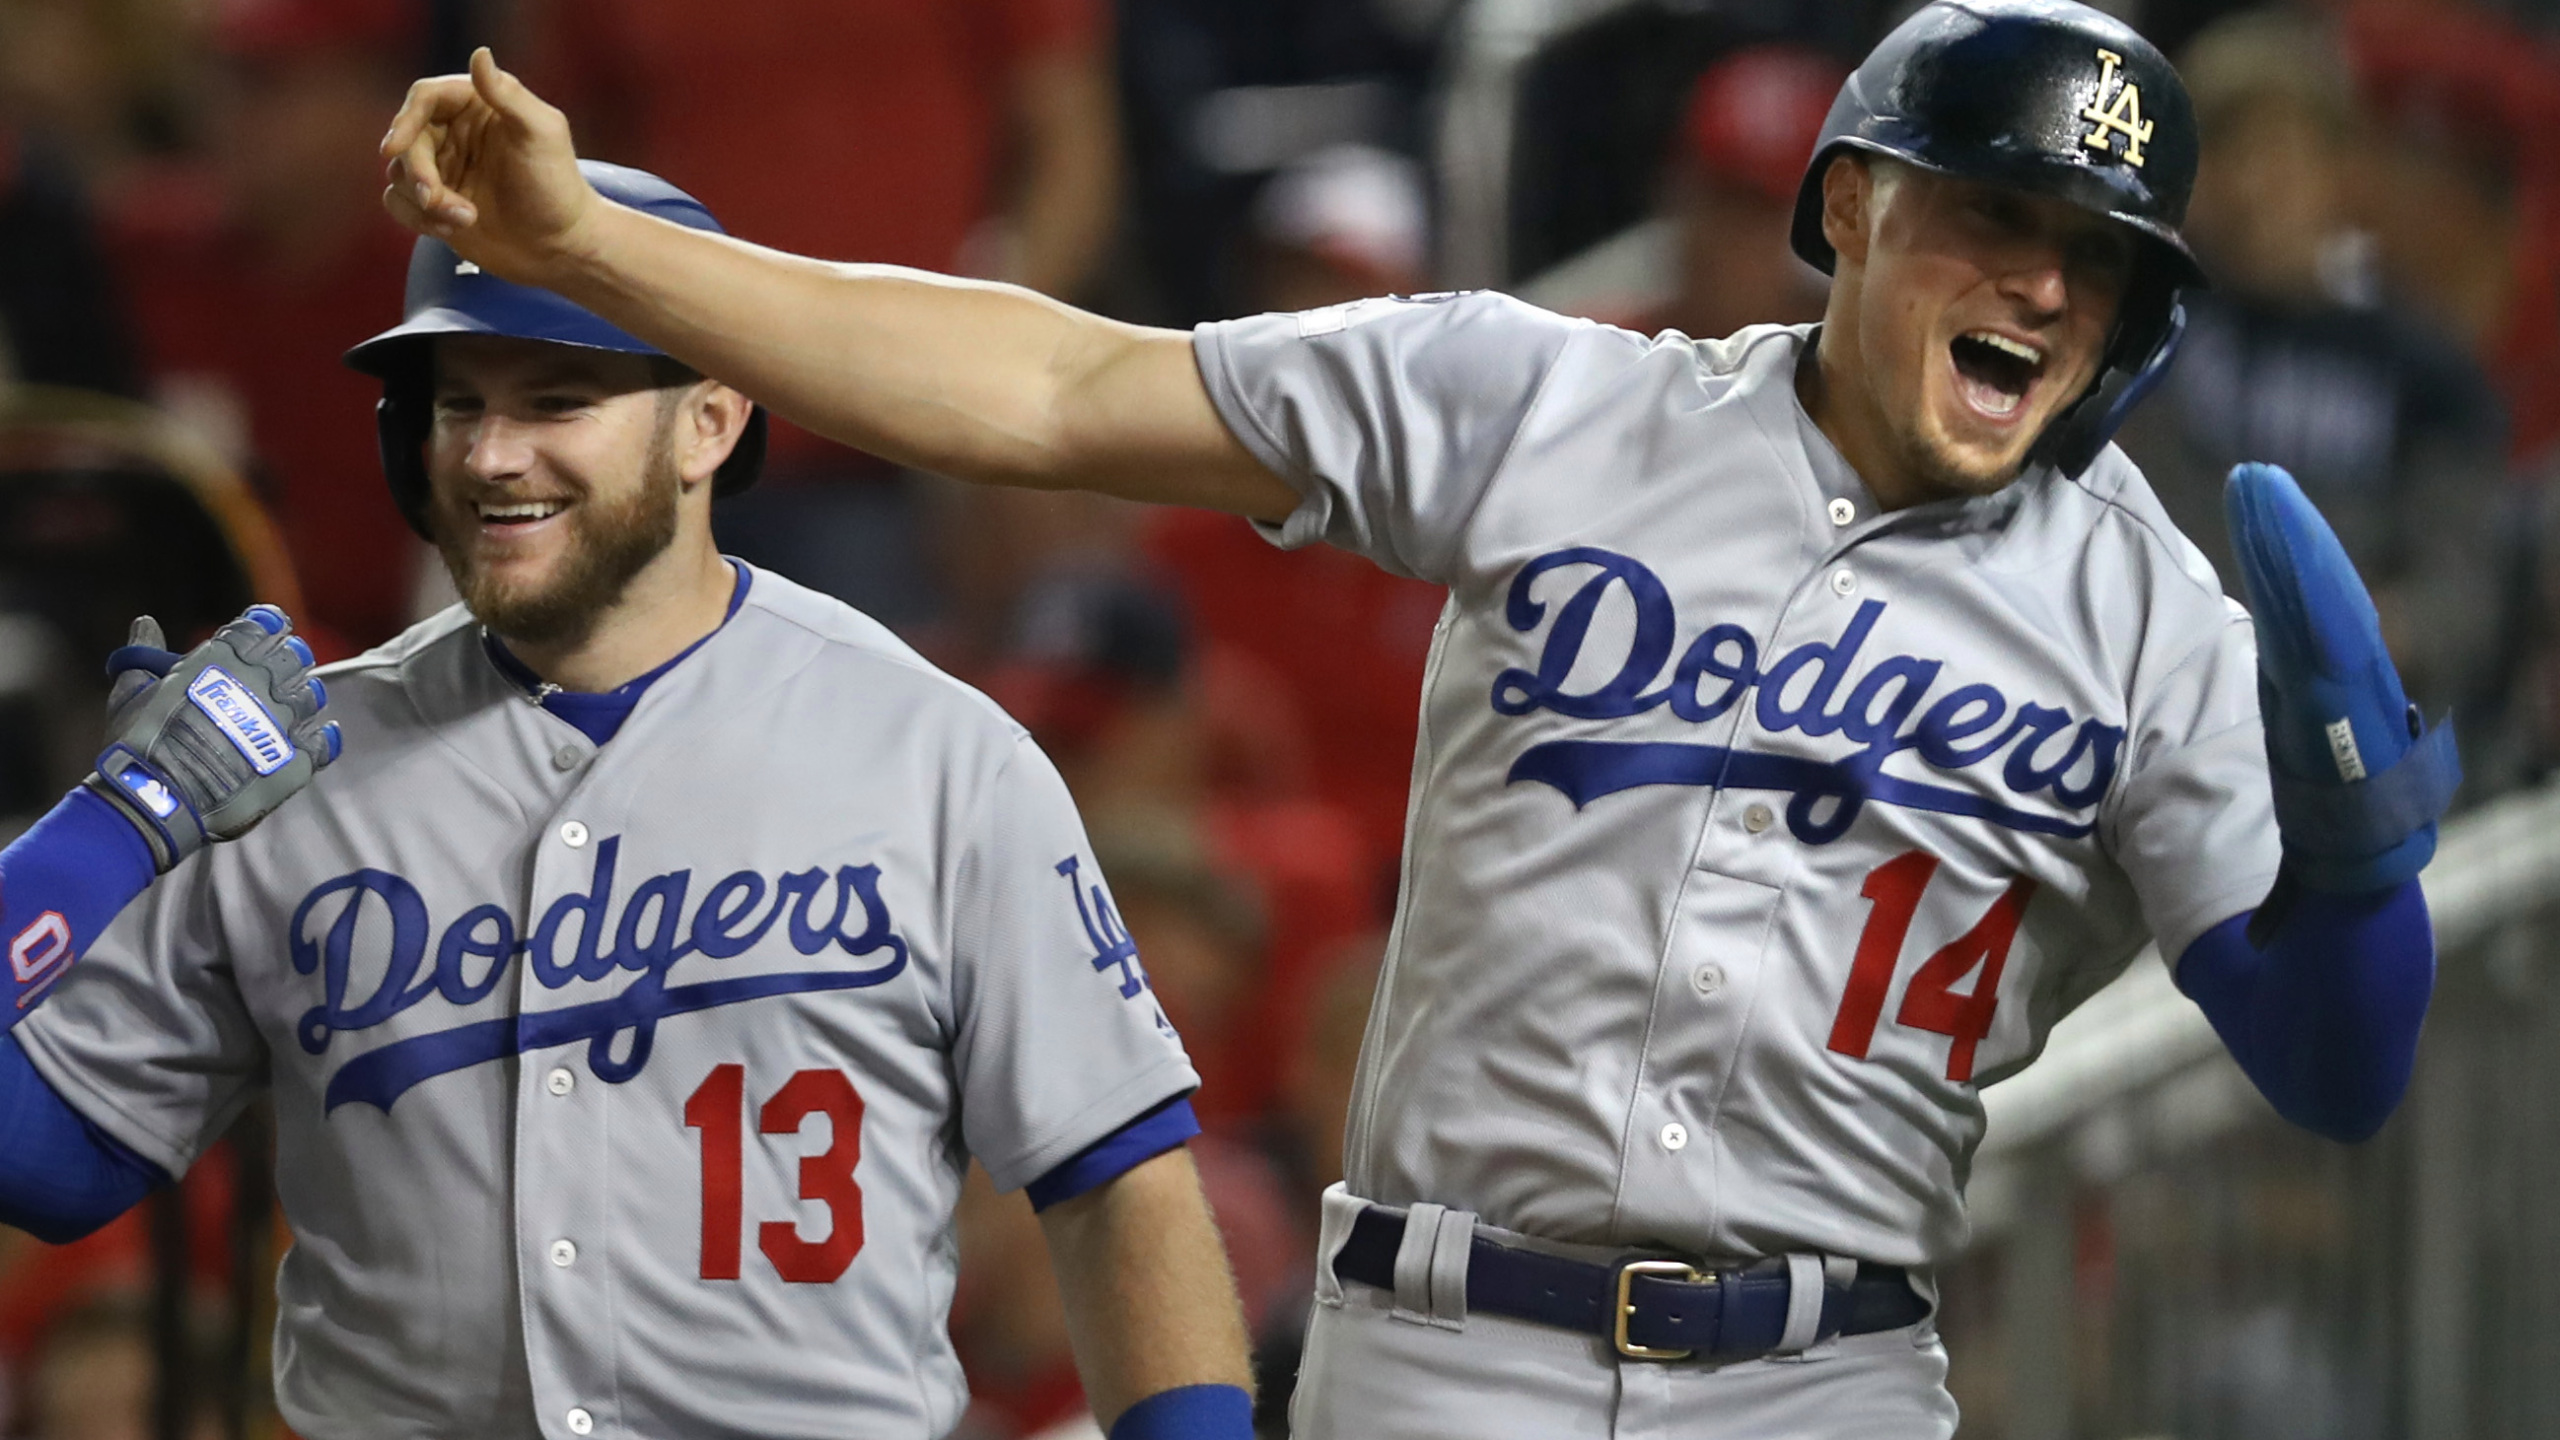 Big 6th inning lifts Dodgers past Nationals 10 4 for NLDS lead 8News 2560x1440